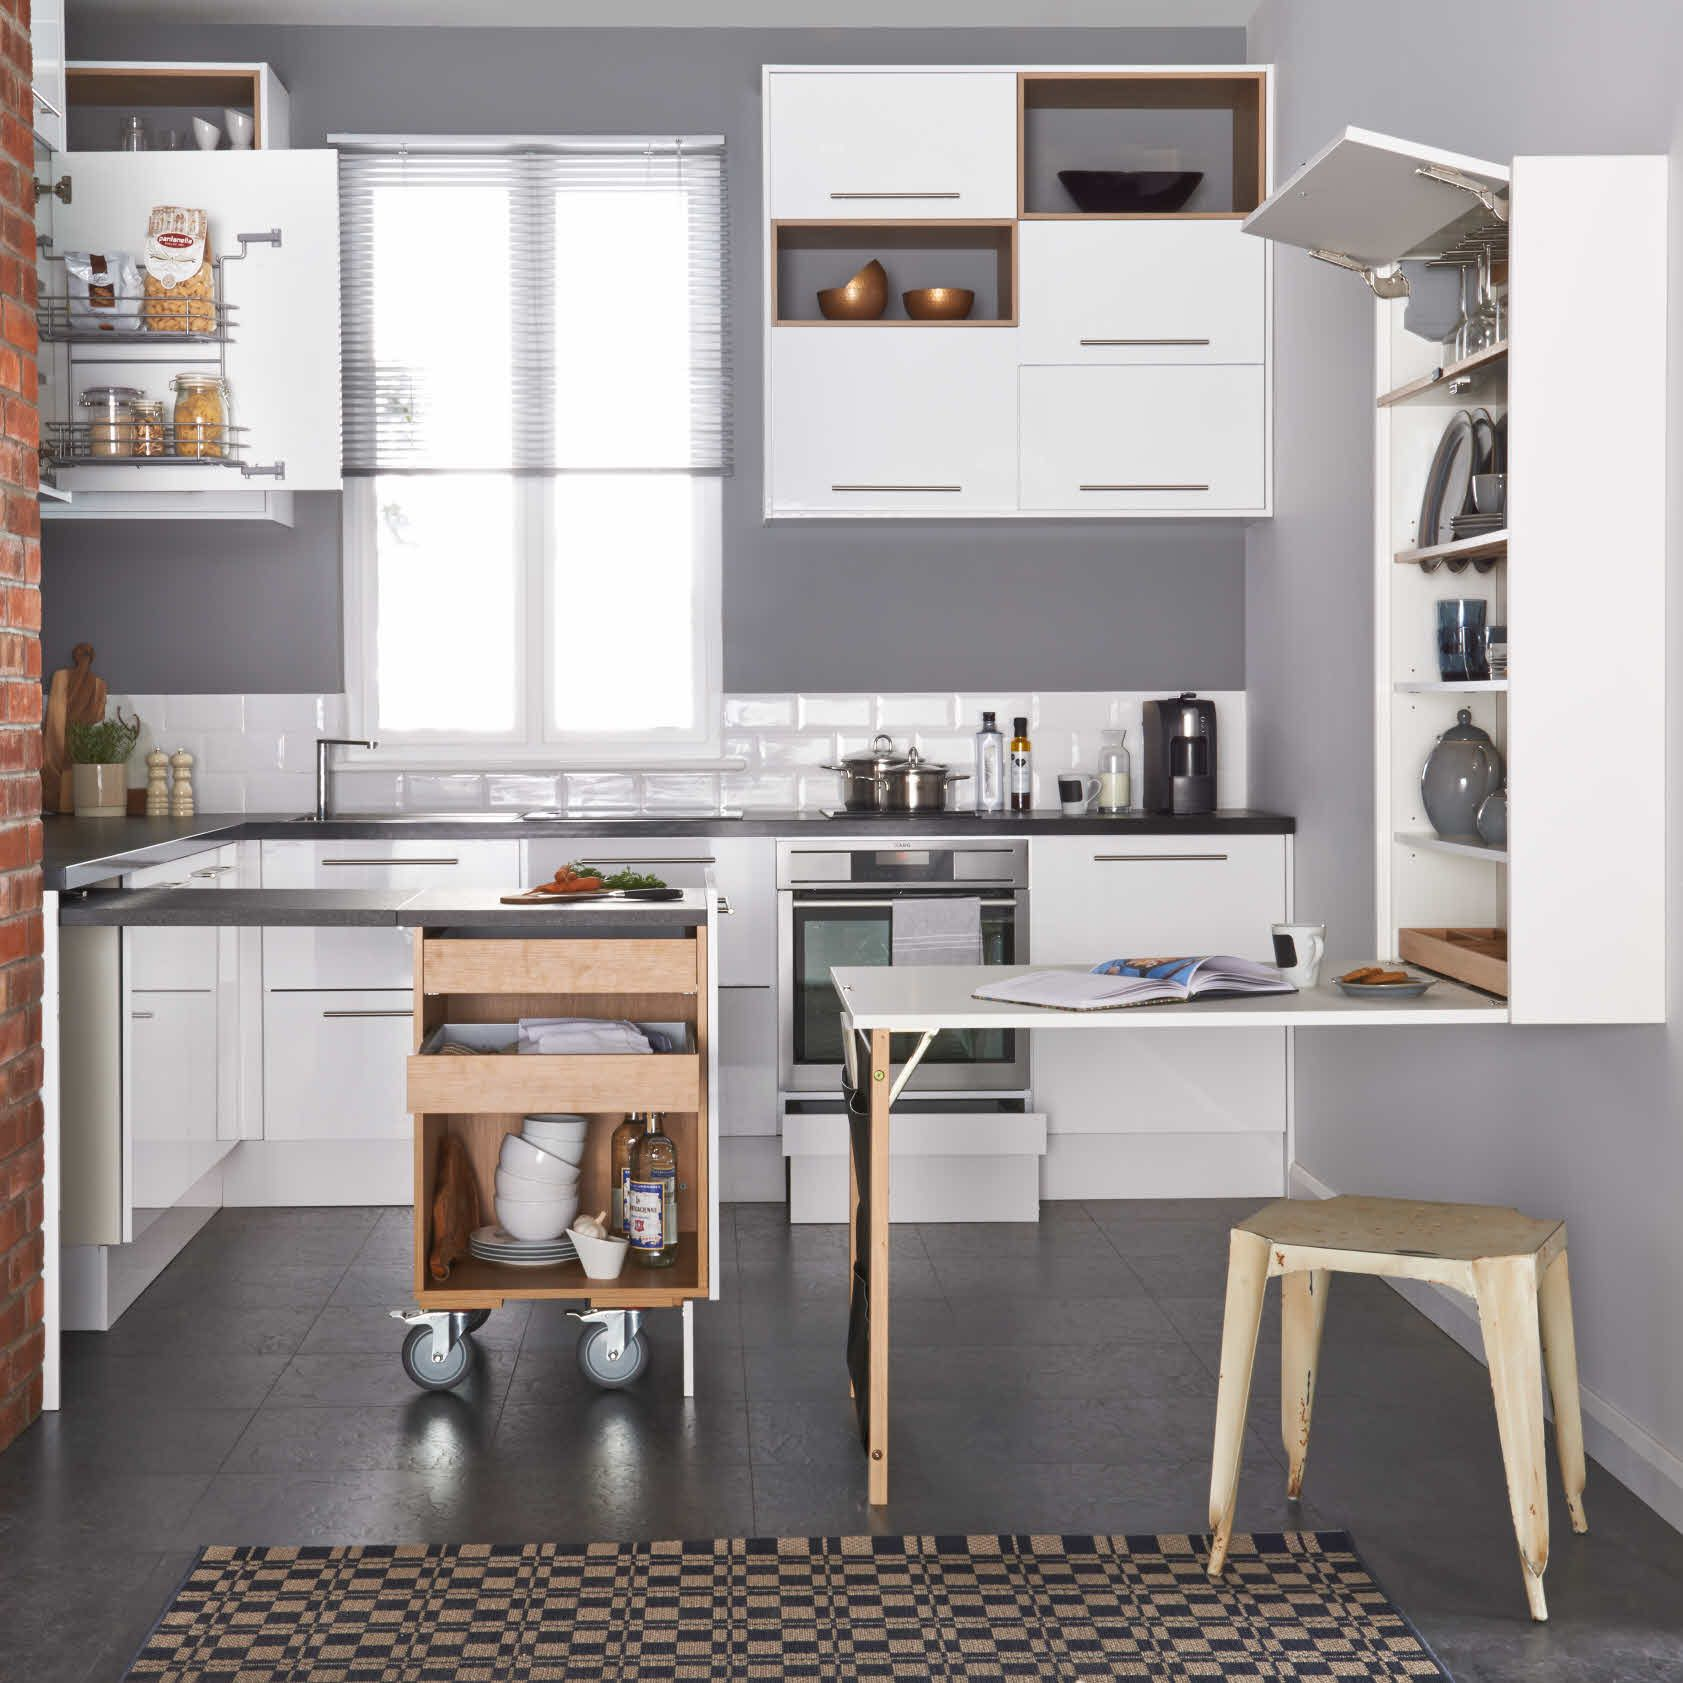 Apollo White Size 0 pull out with worktop